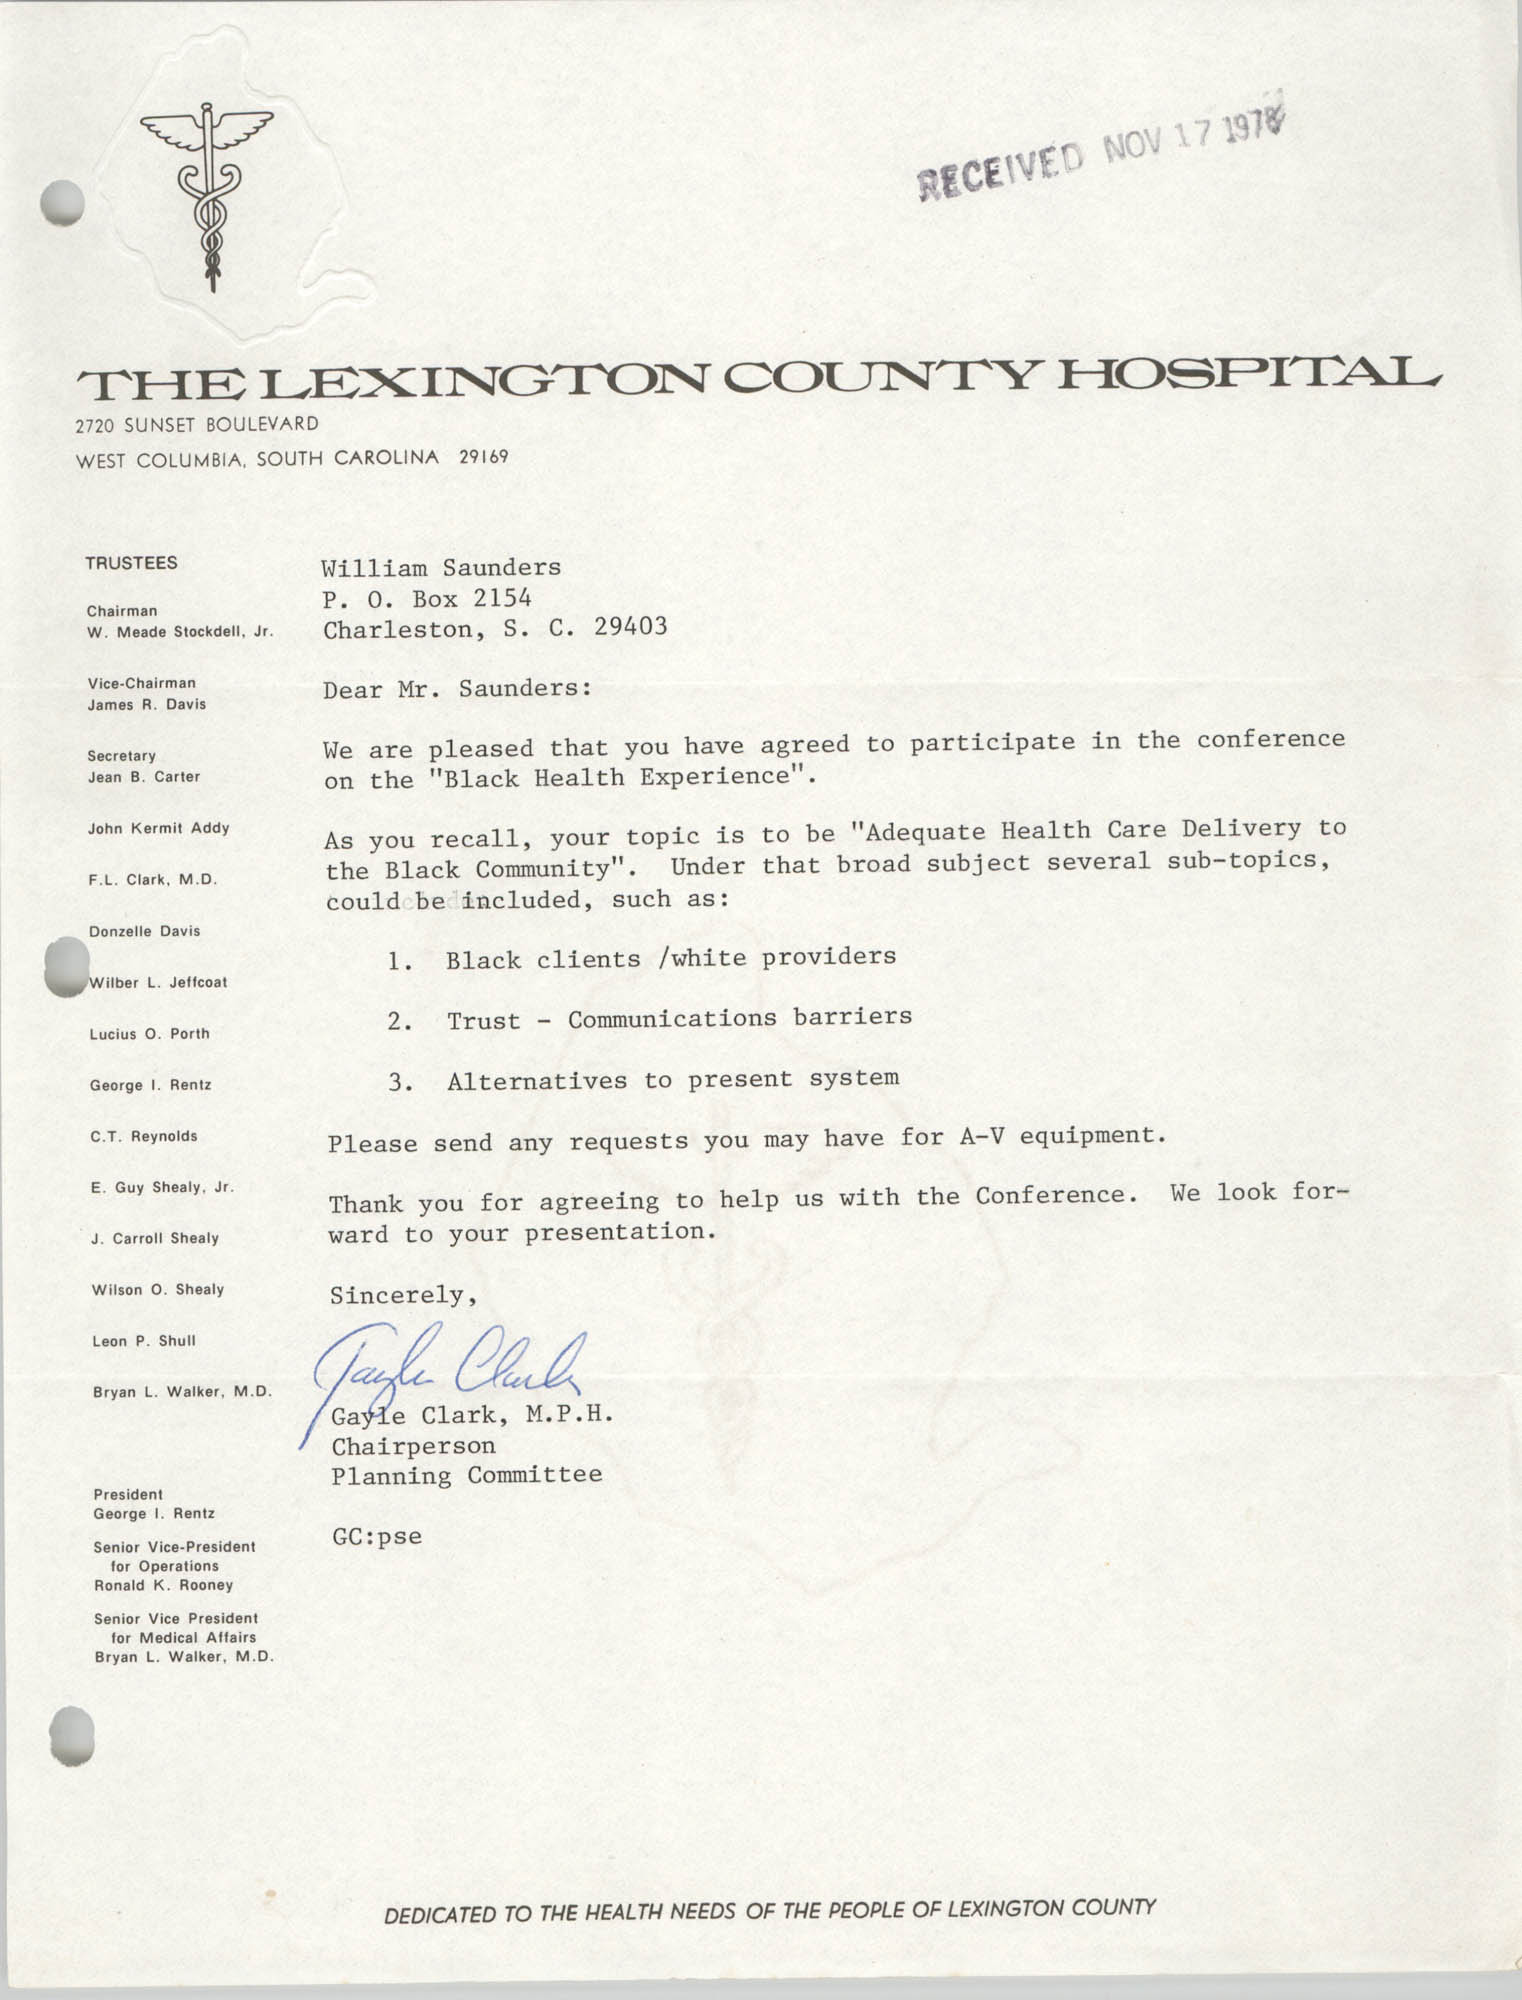 Letter from Gayle Clark to William Saunders, November 17, 1978